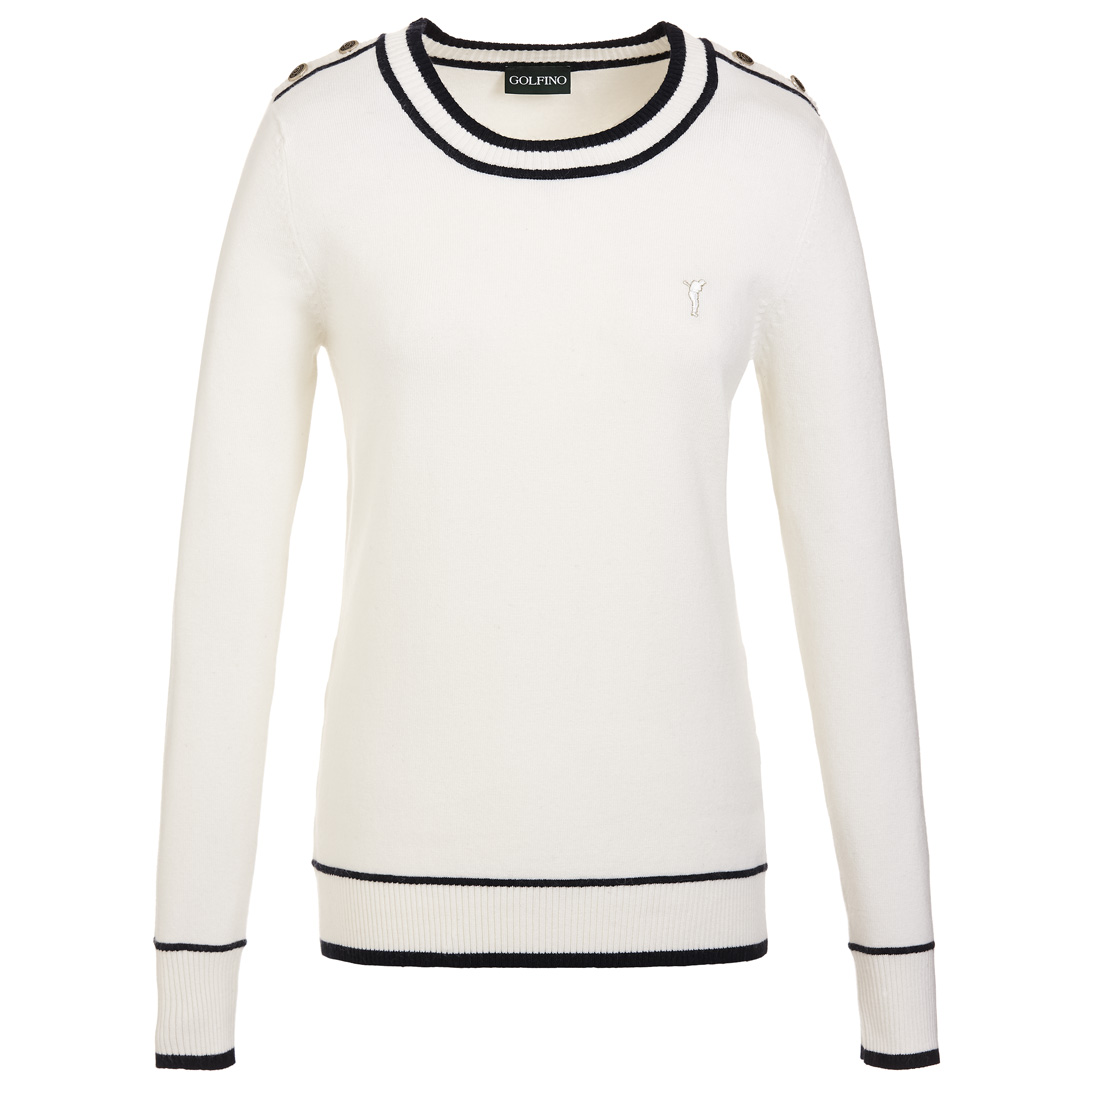 Ladies' round neck cold protection sweater with angora